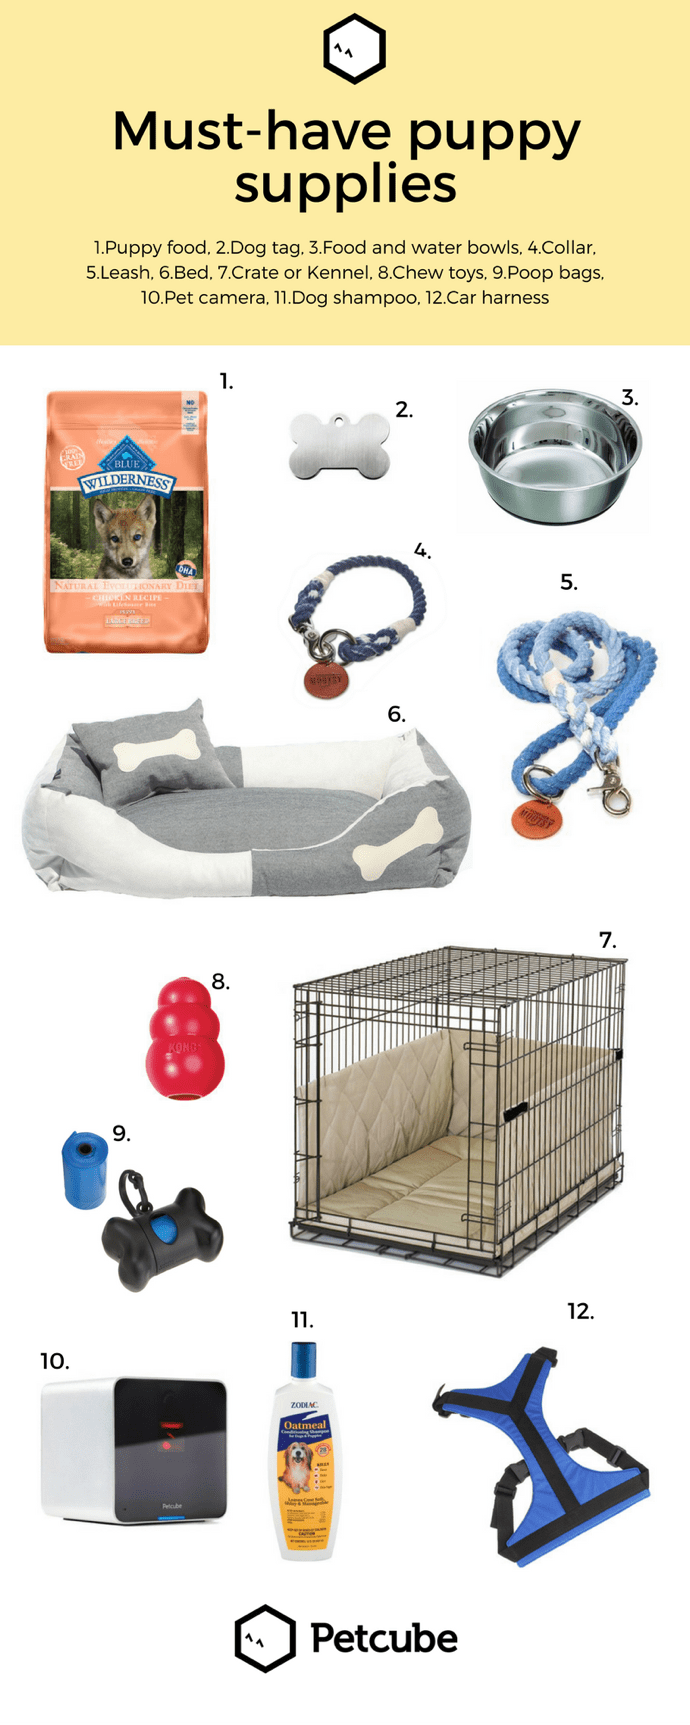 Infographic showing 12 must-have puppy supplies